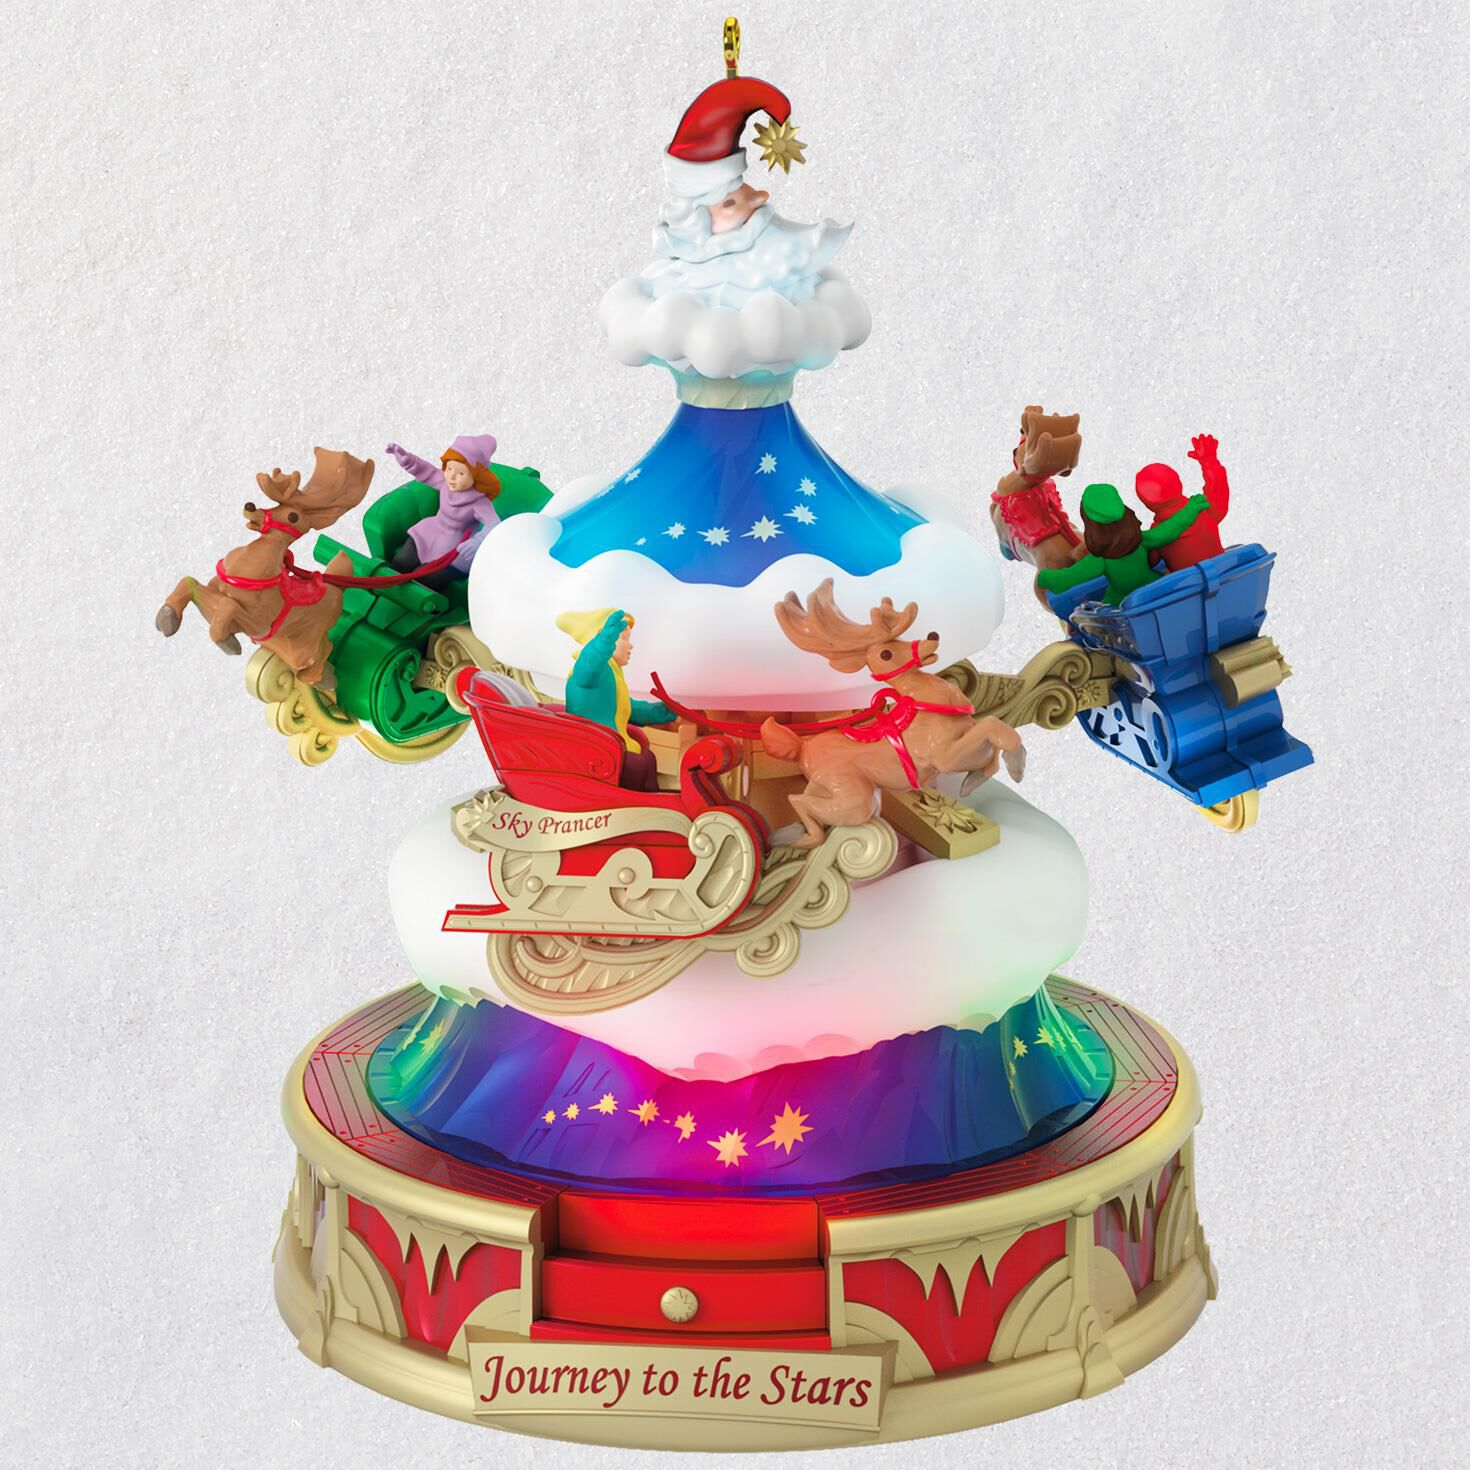 christmas carnival journey to the stars musical ornament with light and motion keepsake ornaments hallmark - Hallmark Christmas Decorations